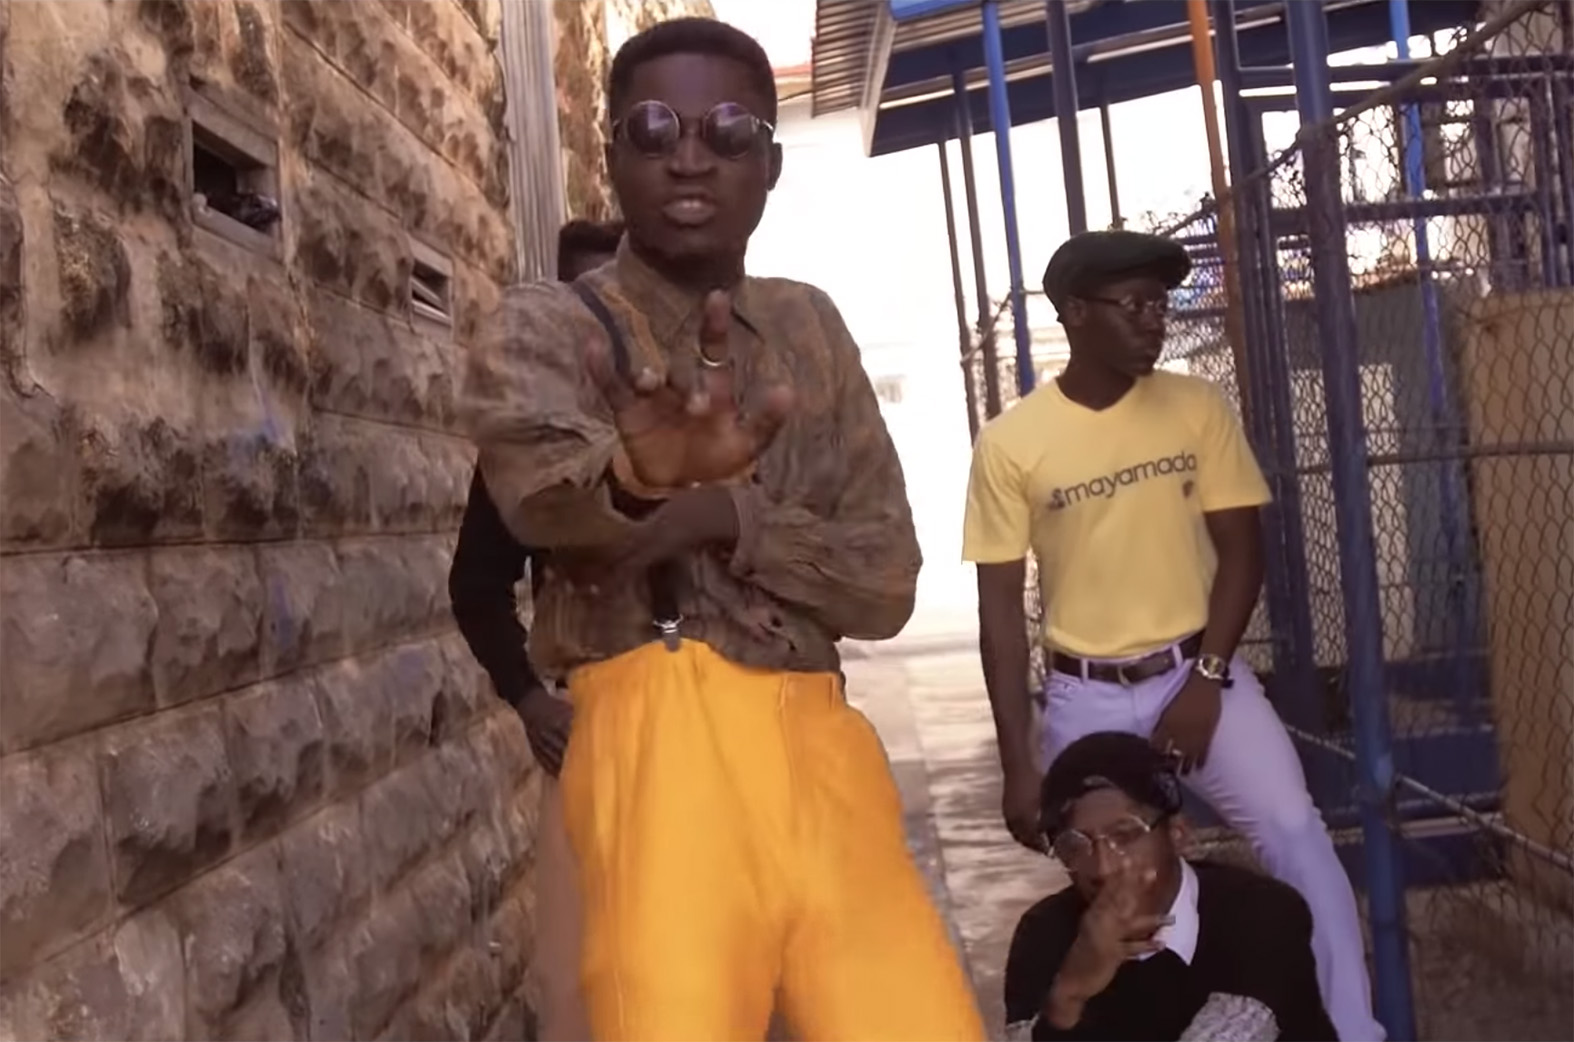 Video: DHOPE by Yung Sabo, Abiolizi & DJ Teezy